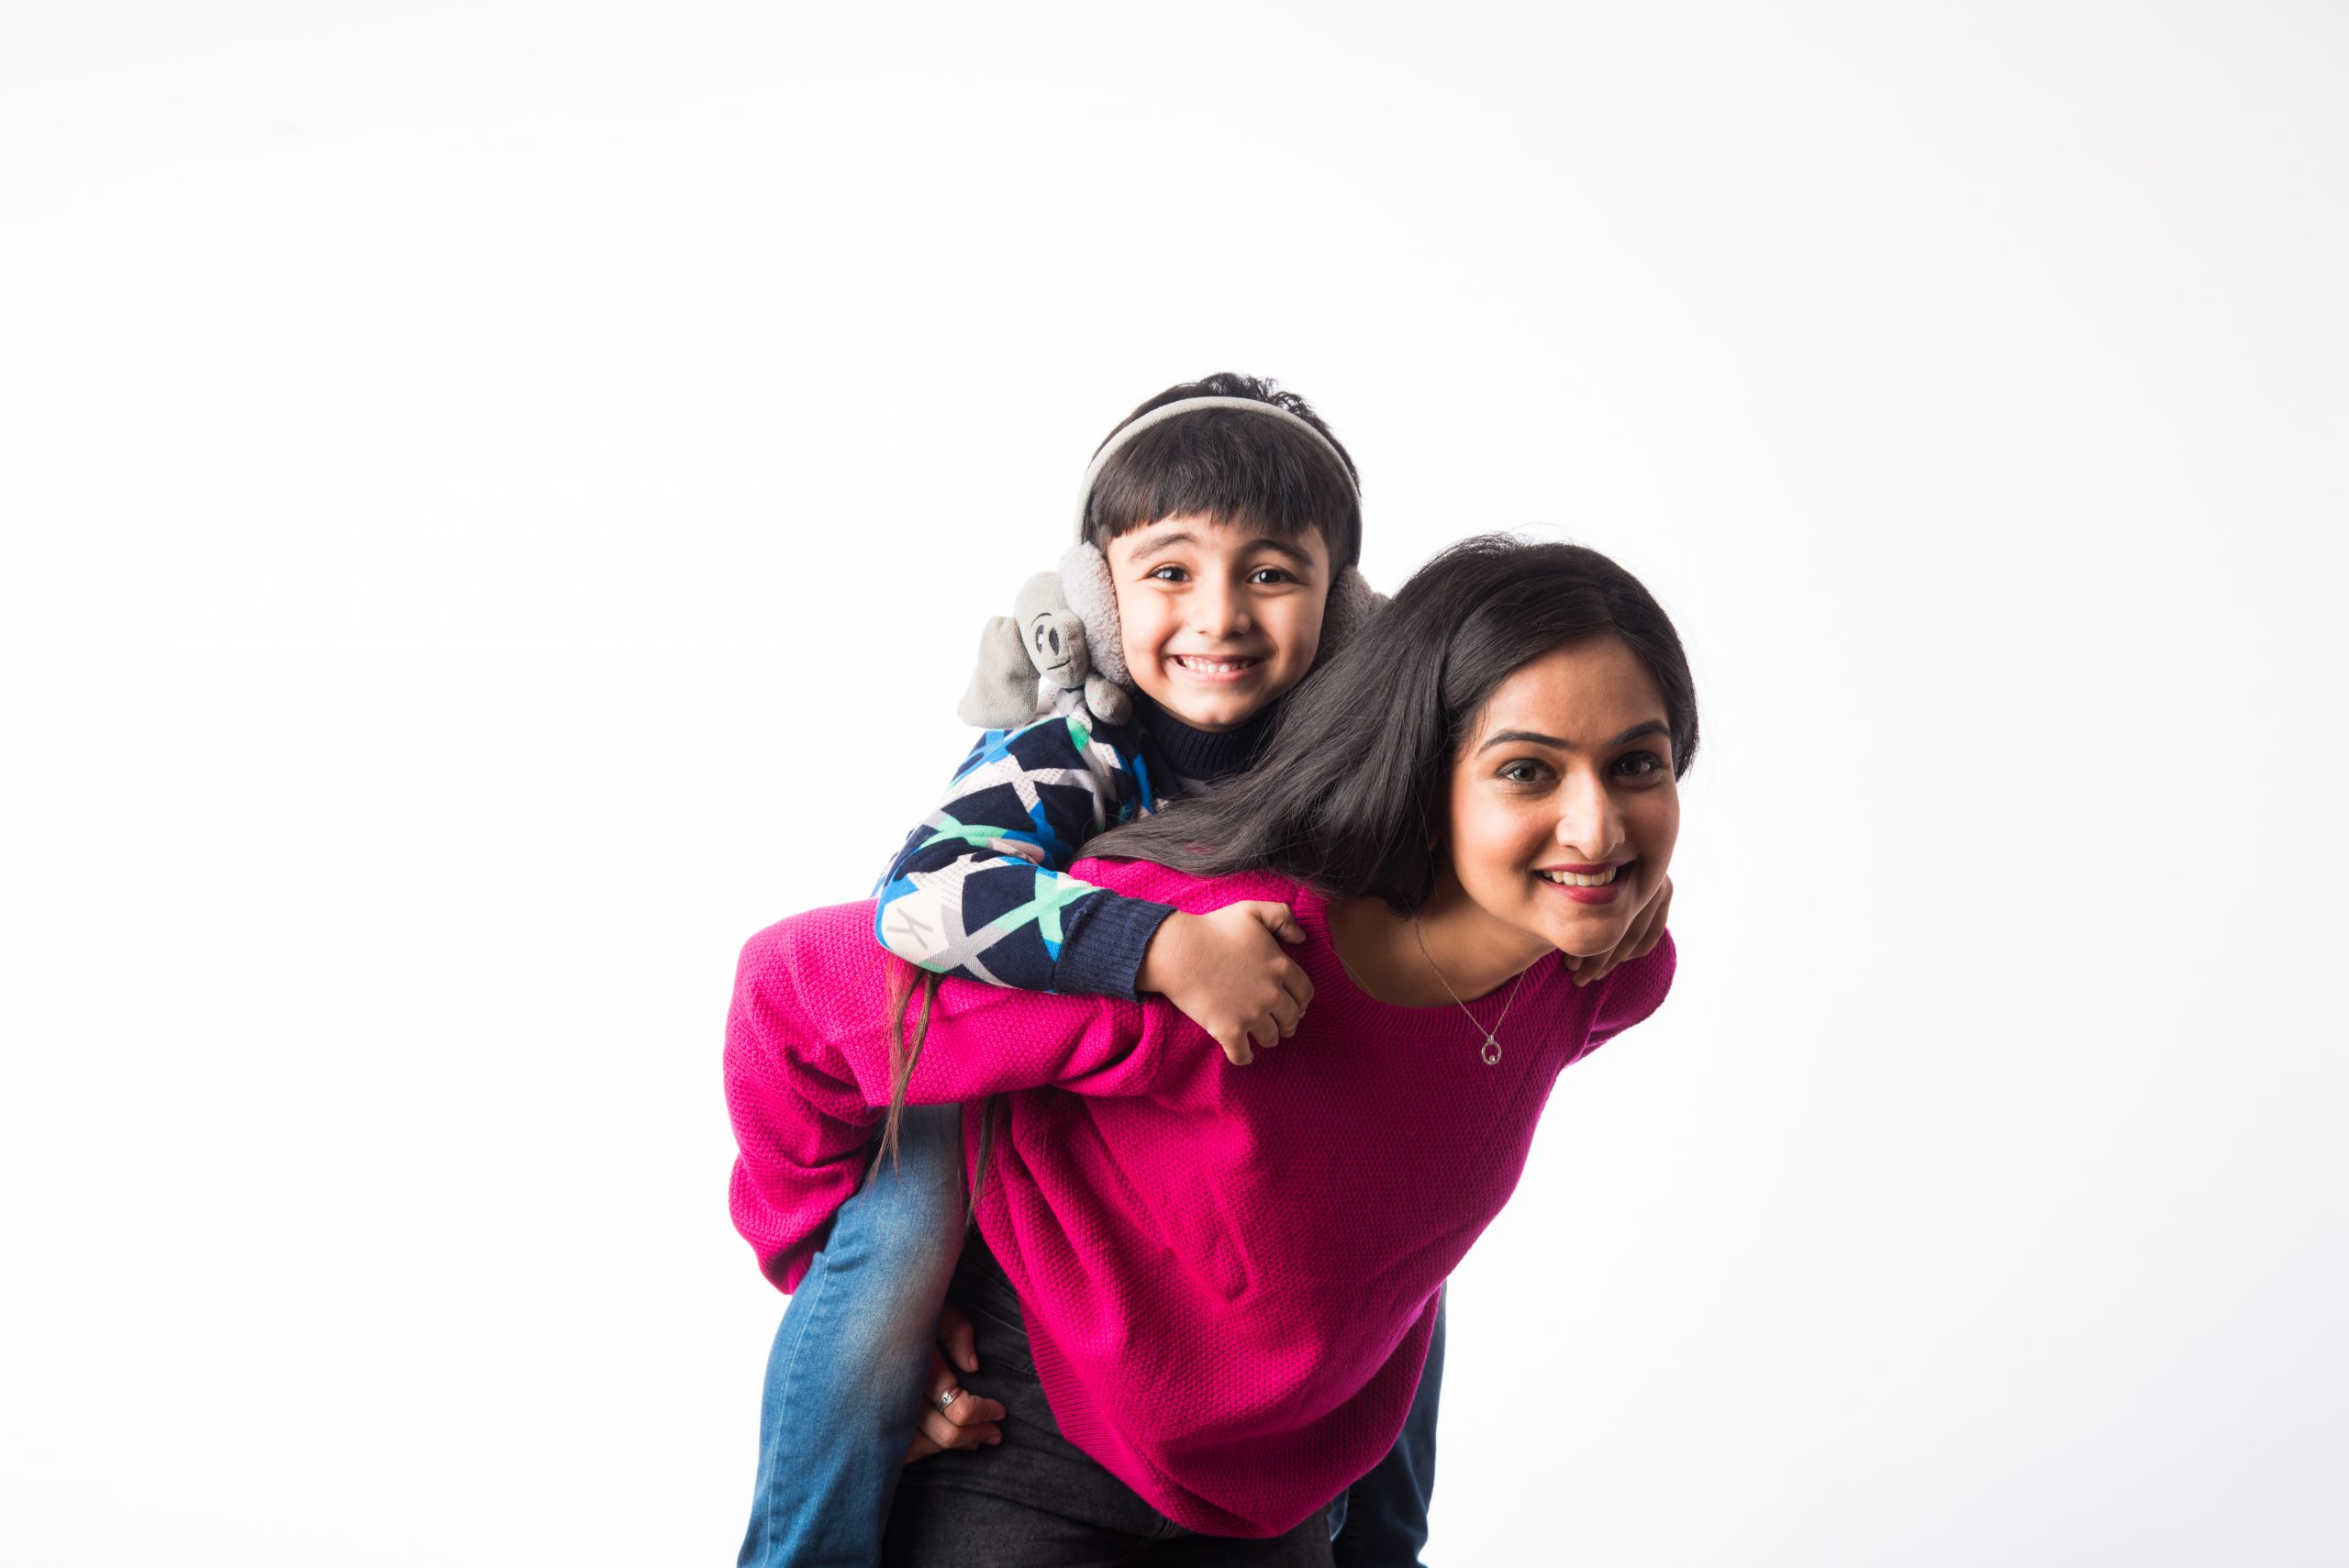 Indian pretty mother with son wears winter clothes or sweater against white background